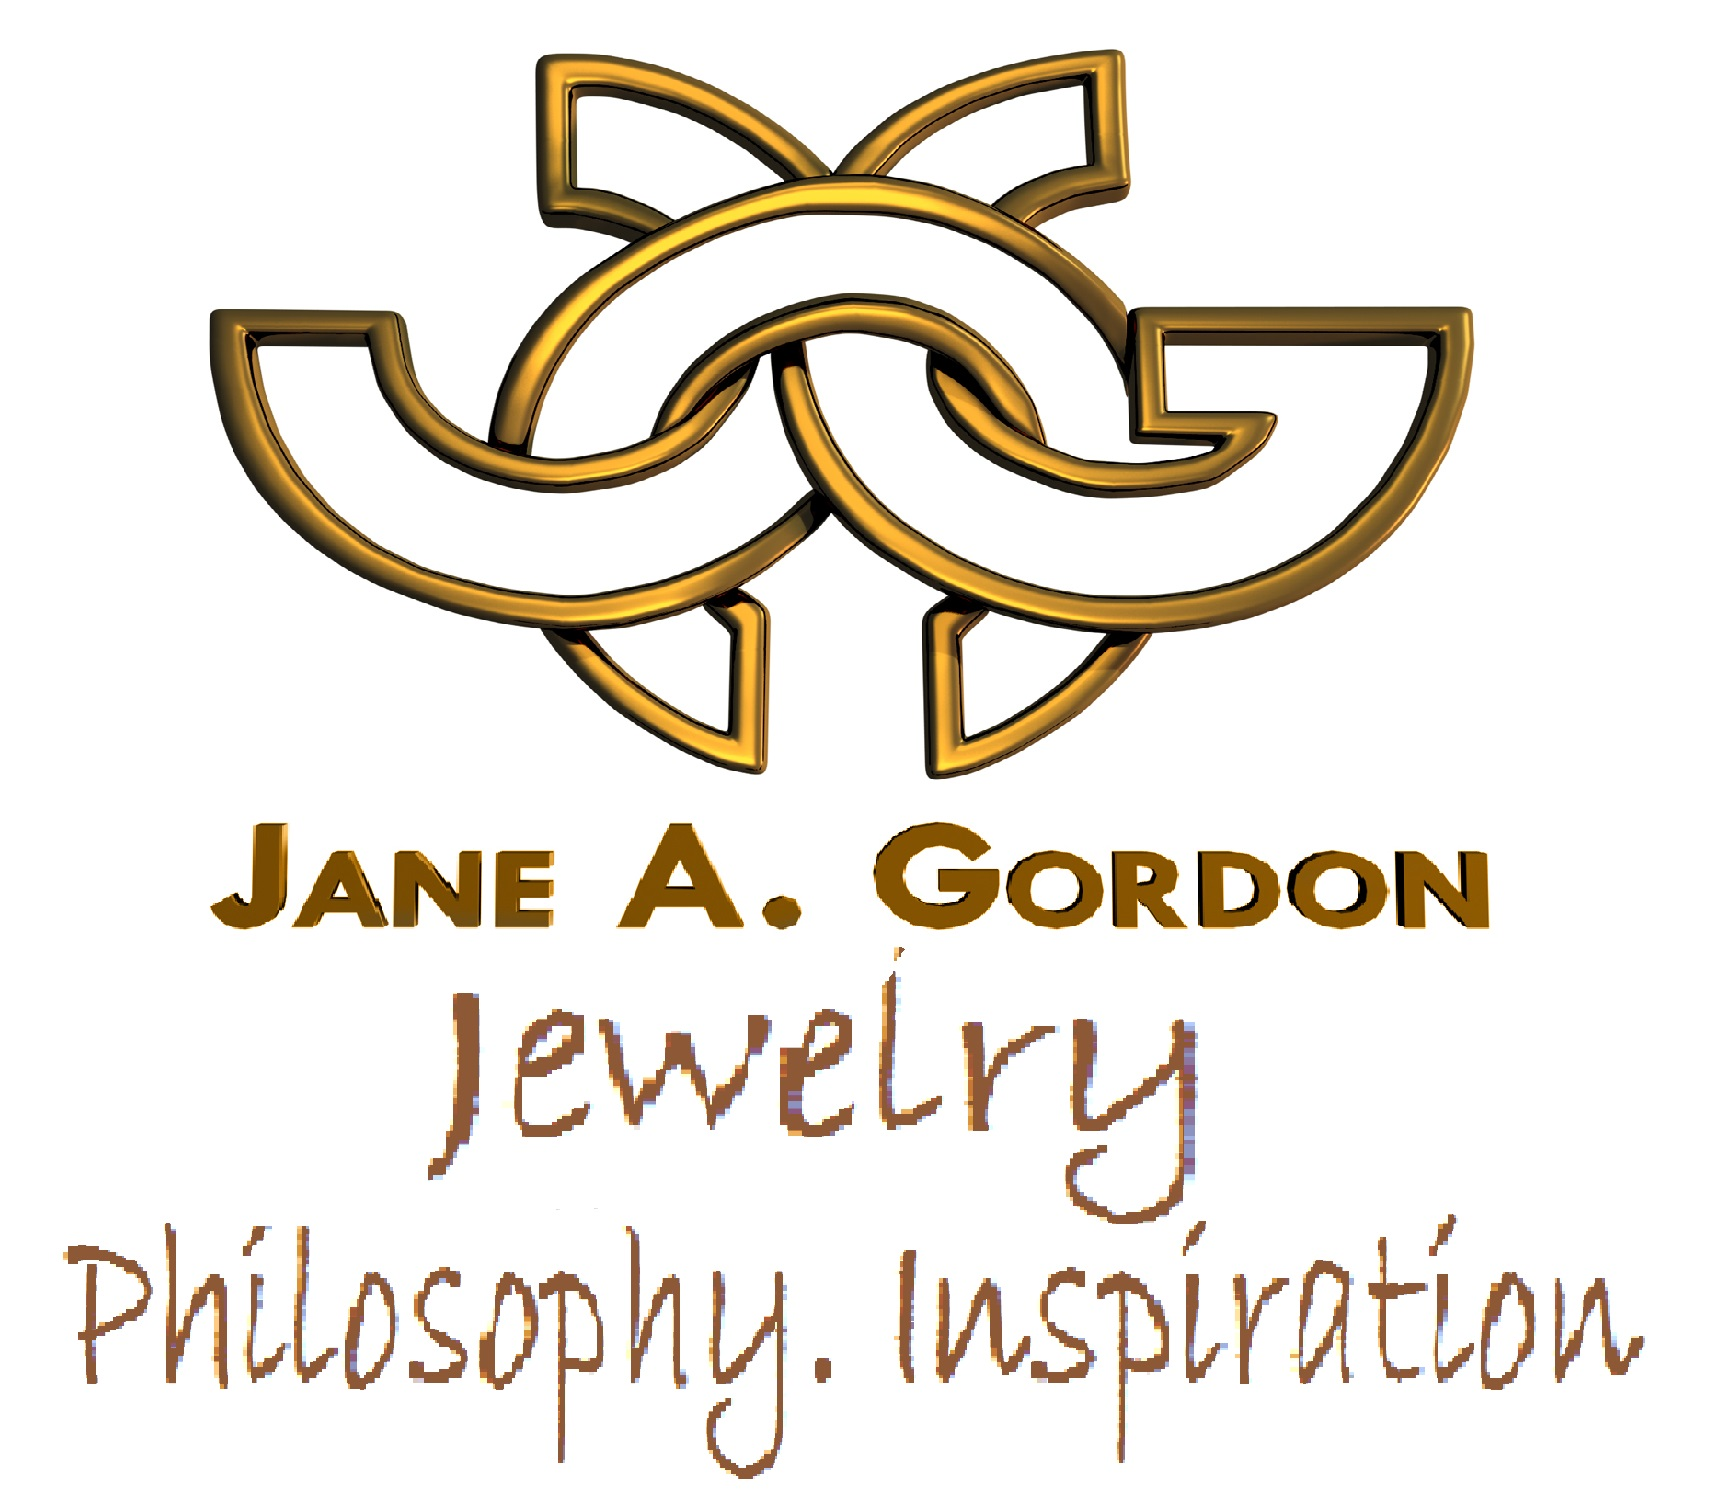 Jane A Gordon Inspirational jewelry, philosophy, joy